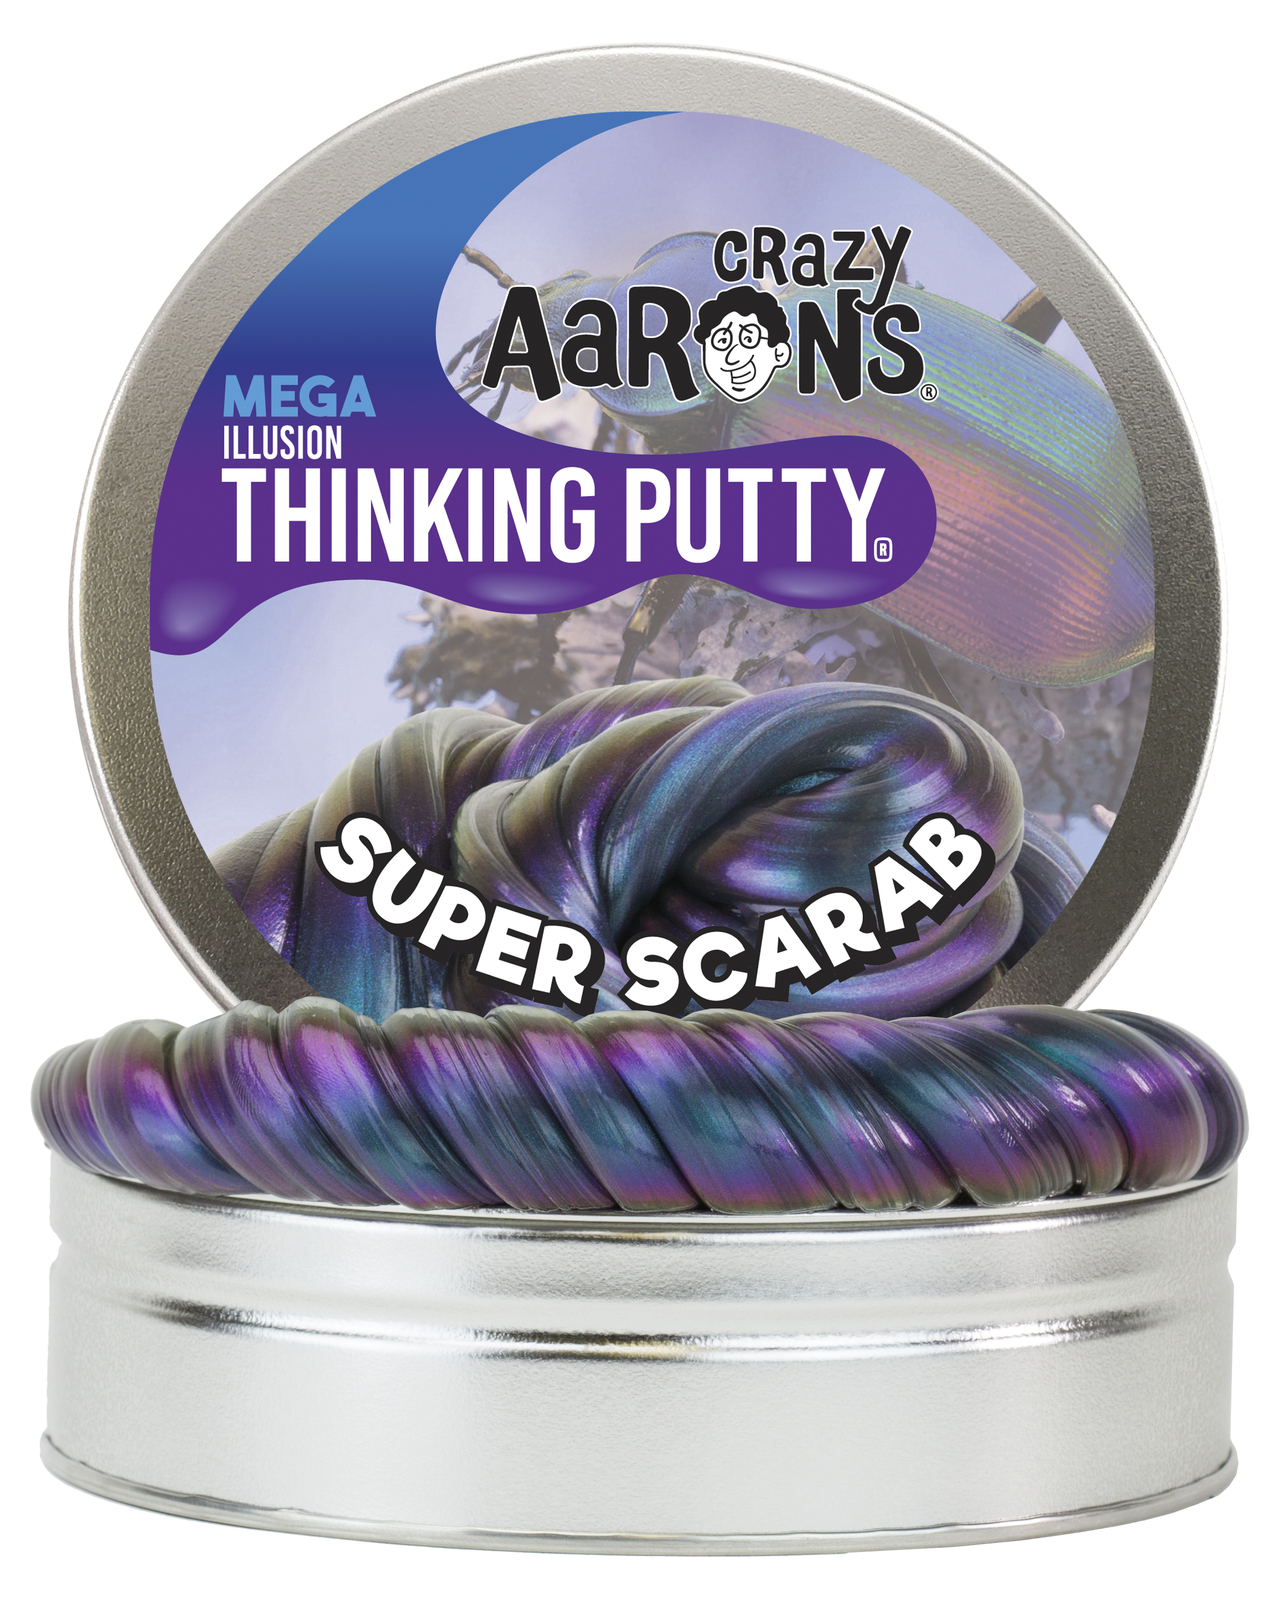 Crazy Aarons: Thinking Putty - Super Scarab (Mega Tin) image